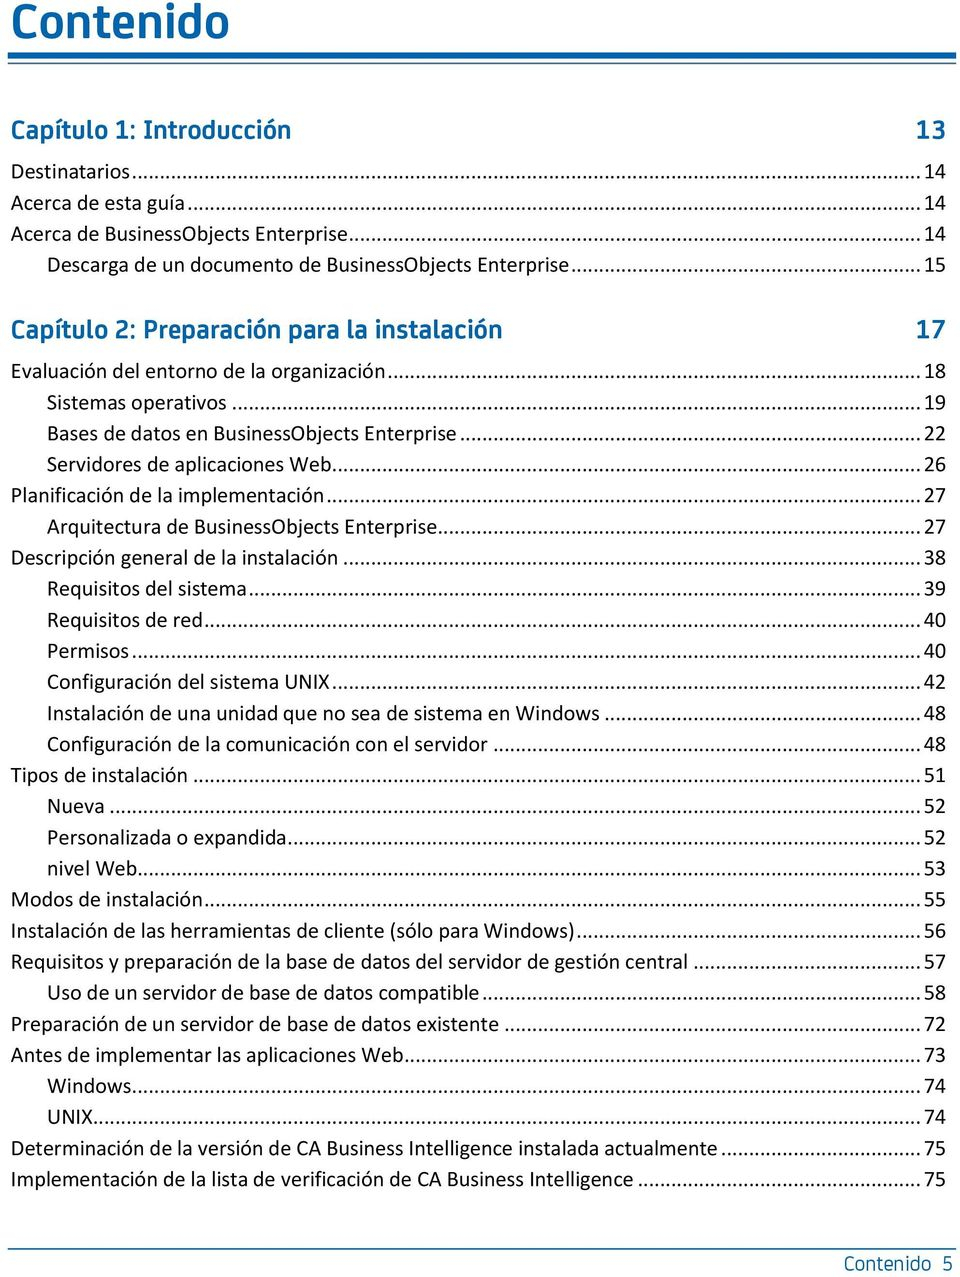 .. 22 Servidores de aplicaciones Web... 26 Planificación de la implementación... 27 Arquitectura de BusinessObjects Enterprise... 27 Descripción general de la instalación... 38 Requisitos del sistema.